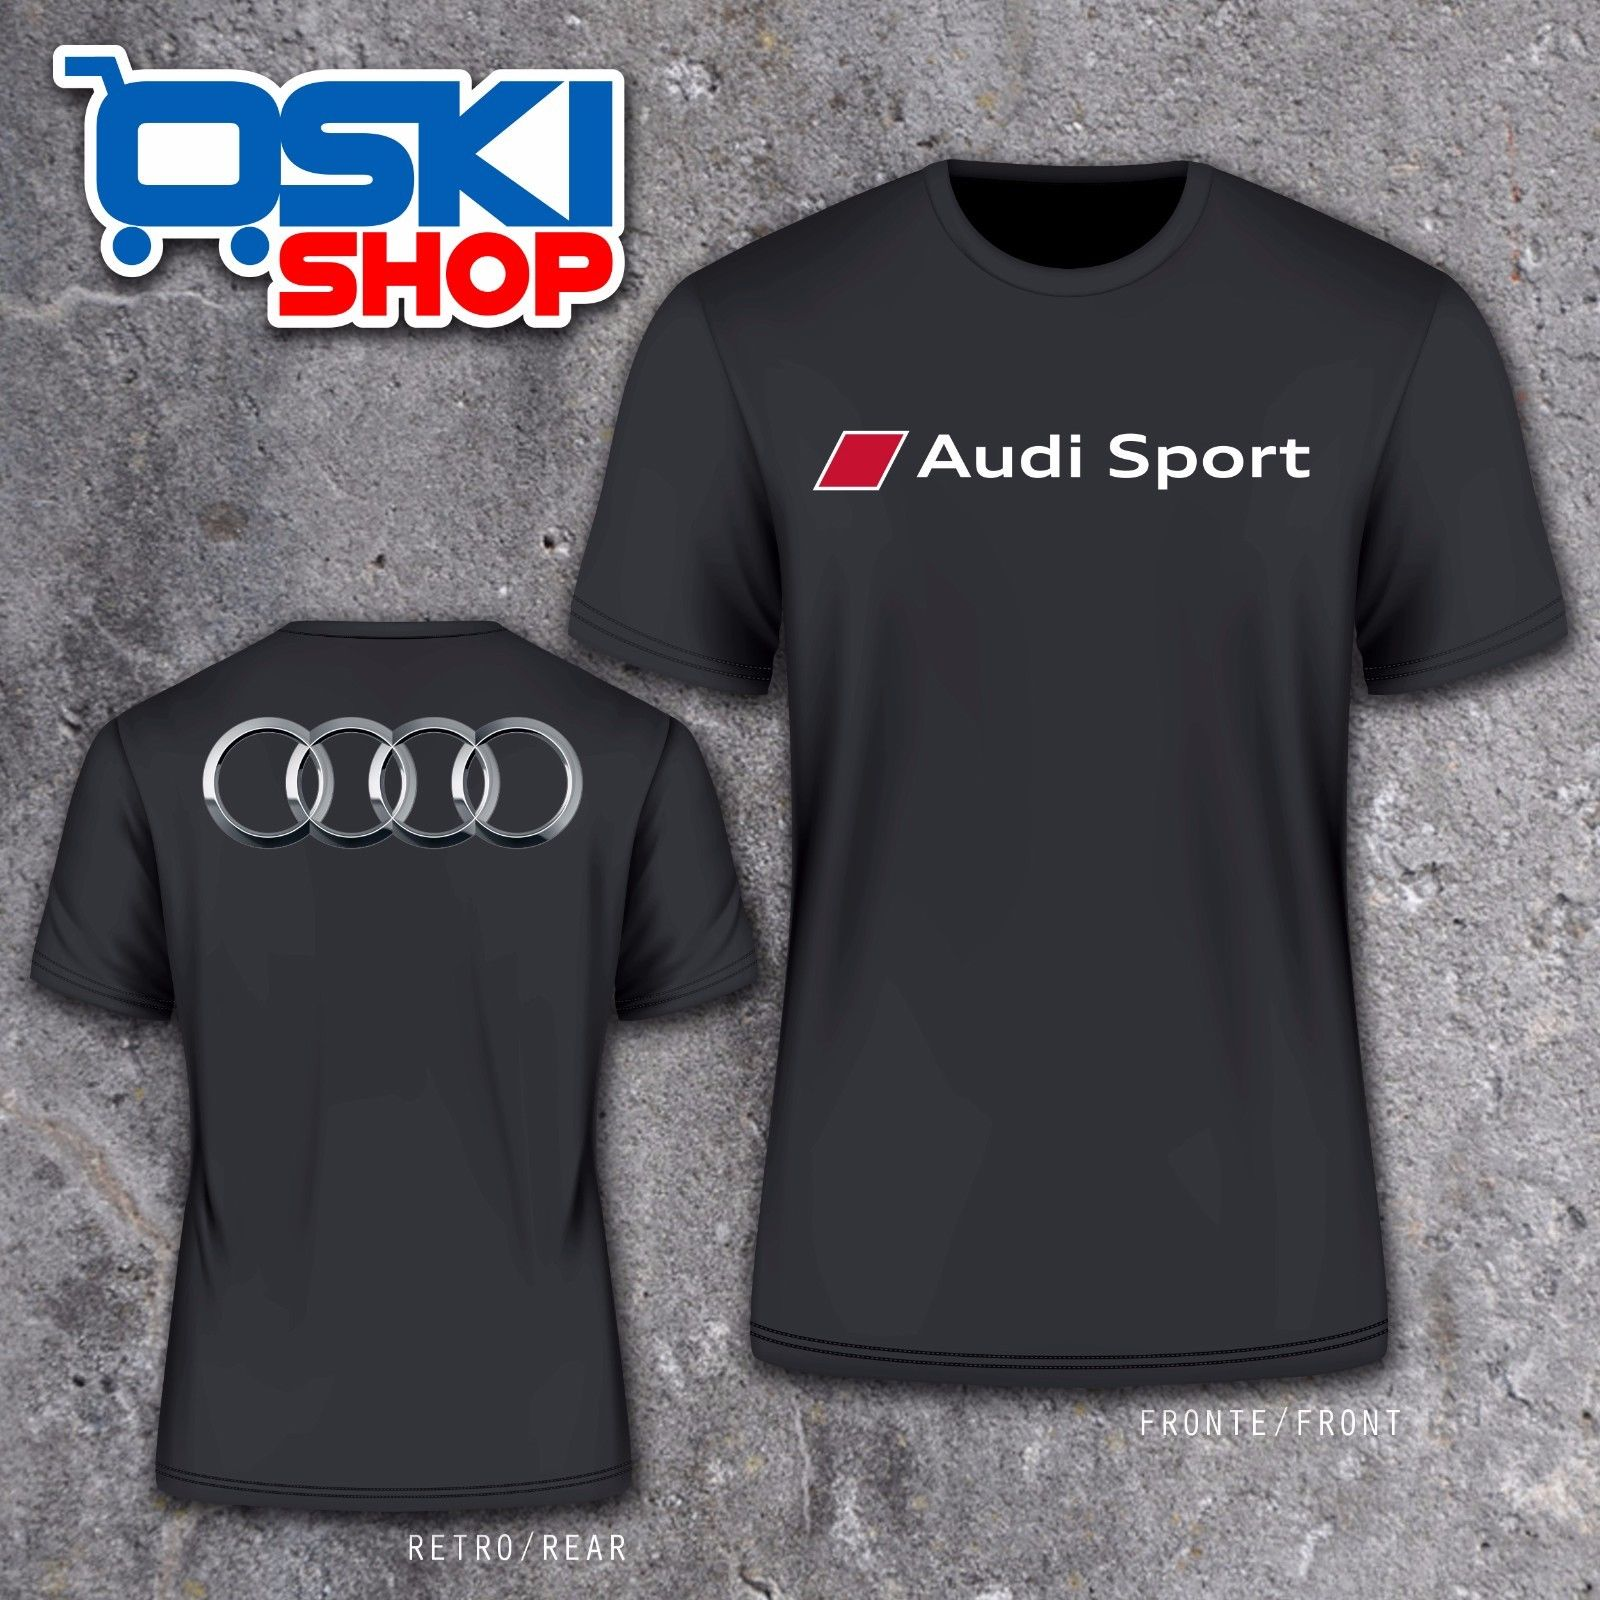 2018 Summer Funny Men Tee Shirt T-SHIRT MAGLIETTA GERMANY CAR SPORTER Q7 TT A3 A4 A6 RS S LINE HQUALITY TOP CAR TEES